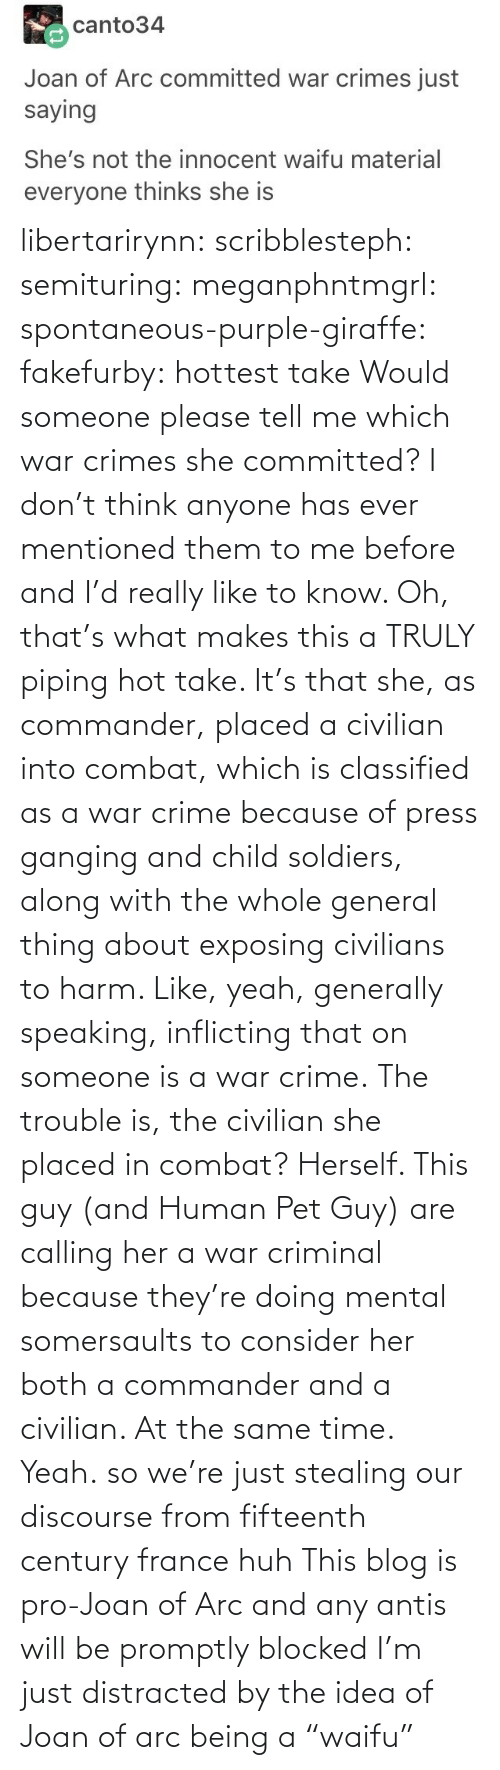 "war: libertarirynn: scribblesteph:  semituring:  meganphntmgrl:  spontaneous-purple-giraffe:   fakefurby: hottest take  Would someone please tell me which war crimes she committed? I don't think anyone has ever mentioned them to me before and I'd really like to know.    Oh, that's what makes this a TRULY piping hot take. It's that she, as commander, placed a civilian into combat, which is classified as a war crime because of press ganging and child soldiers, along with the whole general thing about exposing civilians to harm. Like, yeah, generally speaking, inflicting that on someone is a war crime. The trouble is, the civilian she placed in combat? Herself.  This guy (and Human Pet Guy) are calling her a war criminal because they're doing mental somersaults to consider her both a commander and a civilian. At the same time.  Yeah.  so we're just stealing our discourse from fifteenth century france huh   This blog is pro-Joan of Arc and any antis will be promptly blocked   I'm just distracted by the idea of Joan of arc being a ""waifu"""